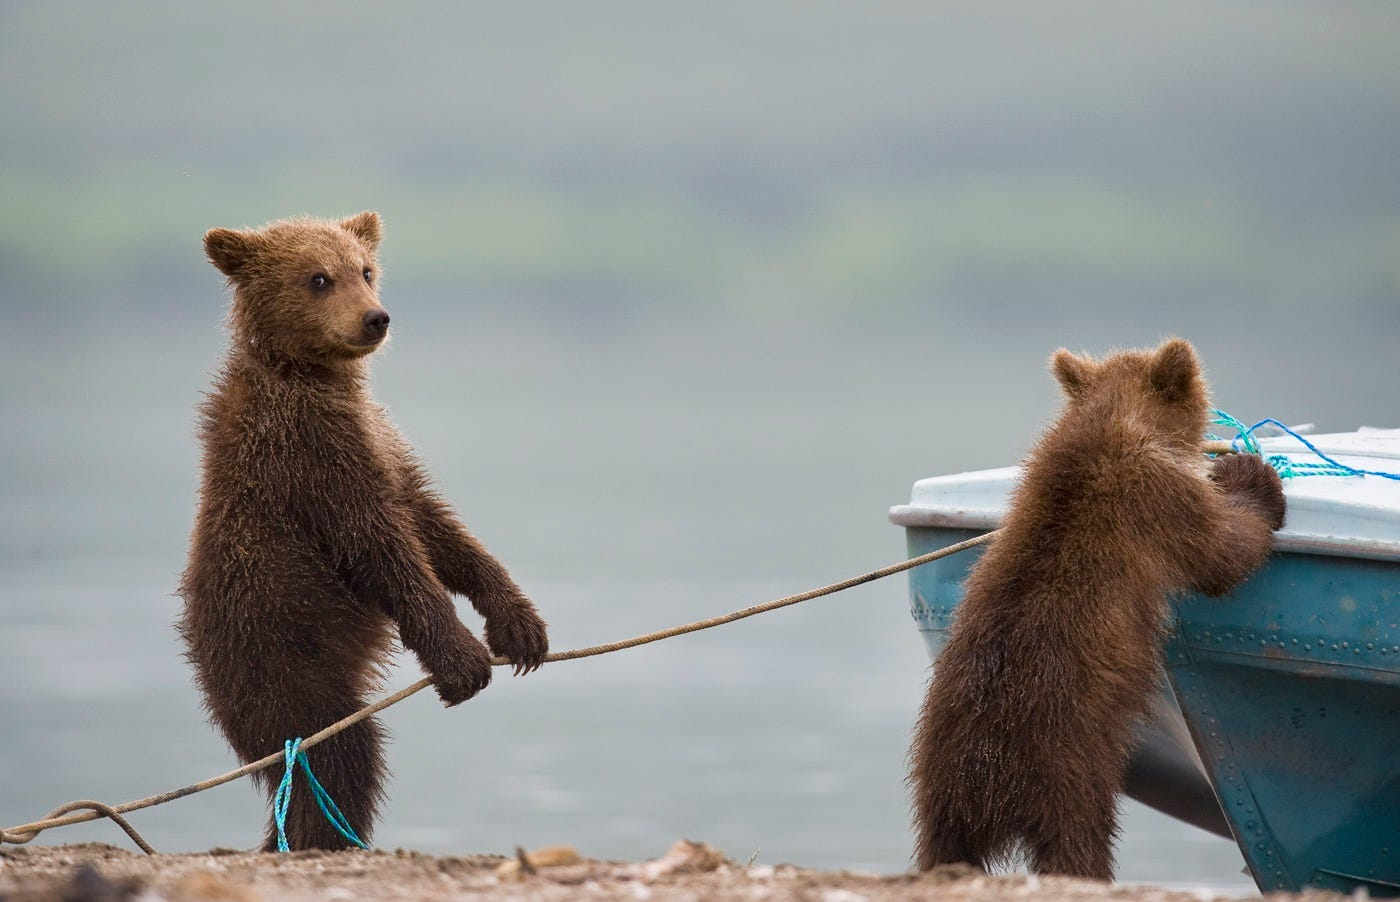 Ungentle charm of Kamchatka bears in photos by Sergey Ivanov - 5